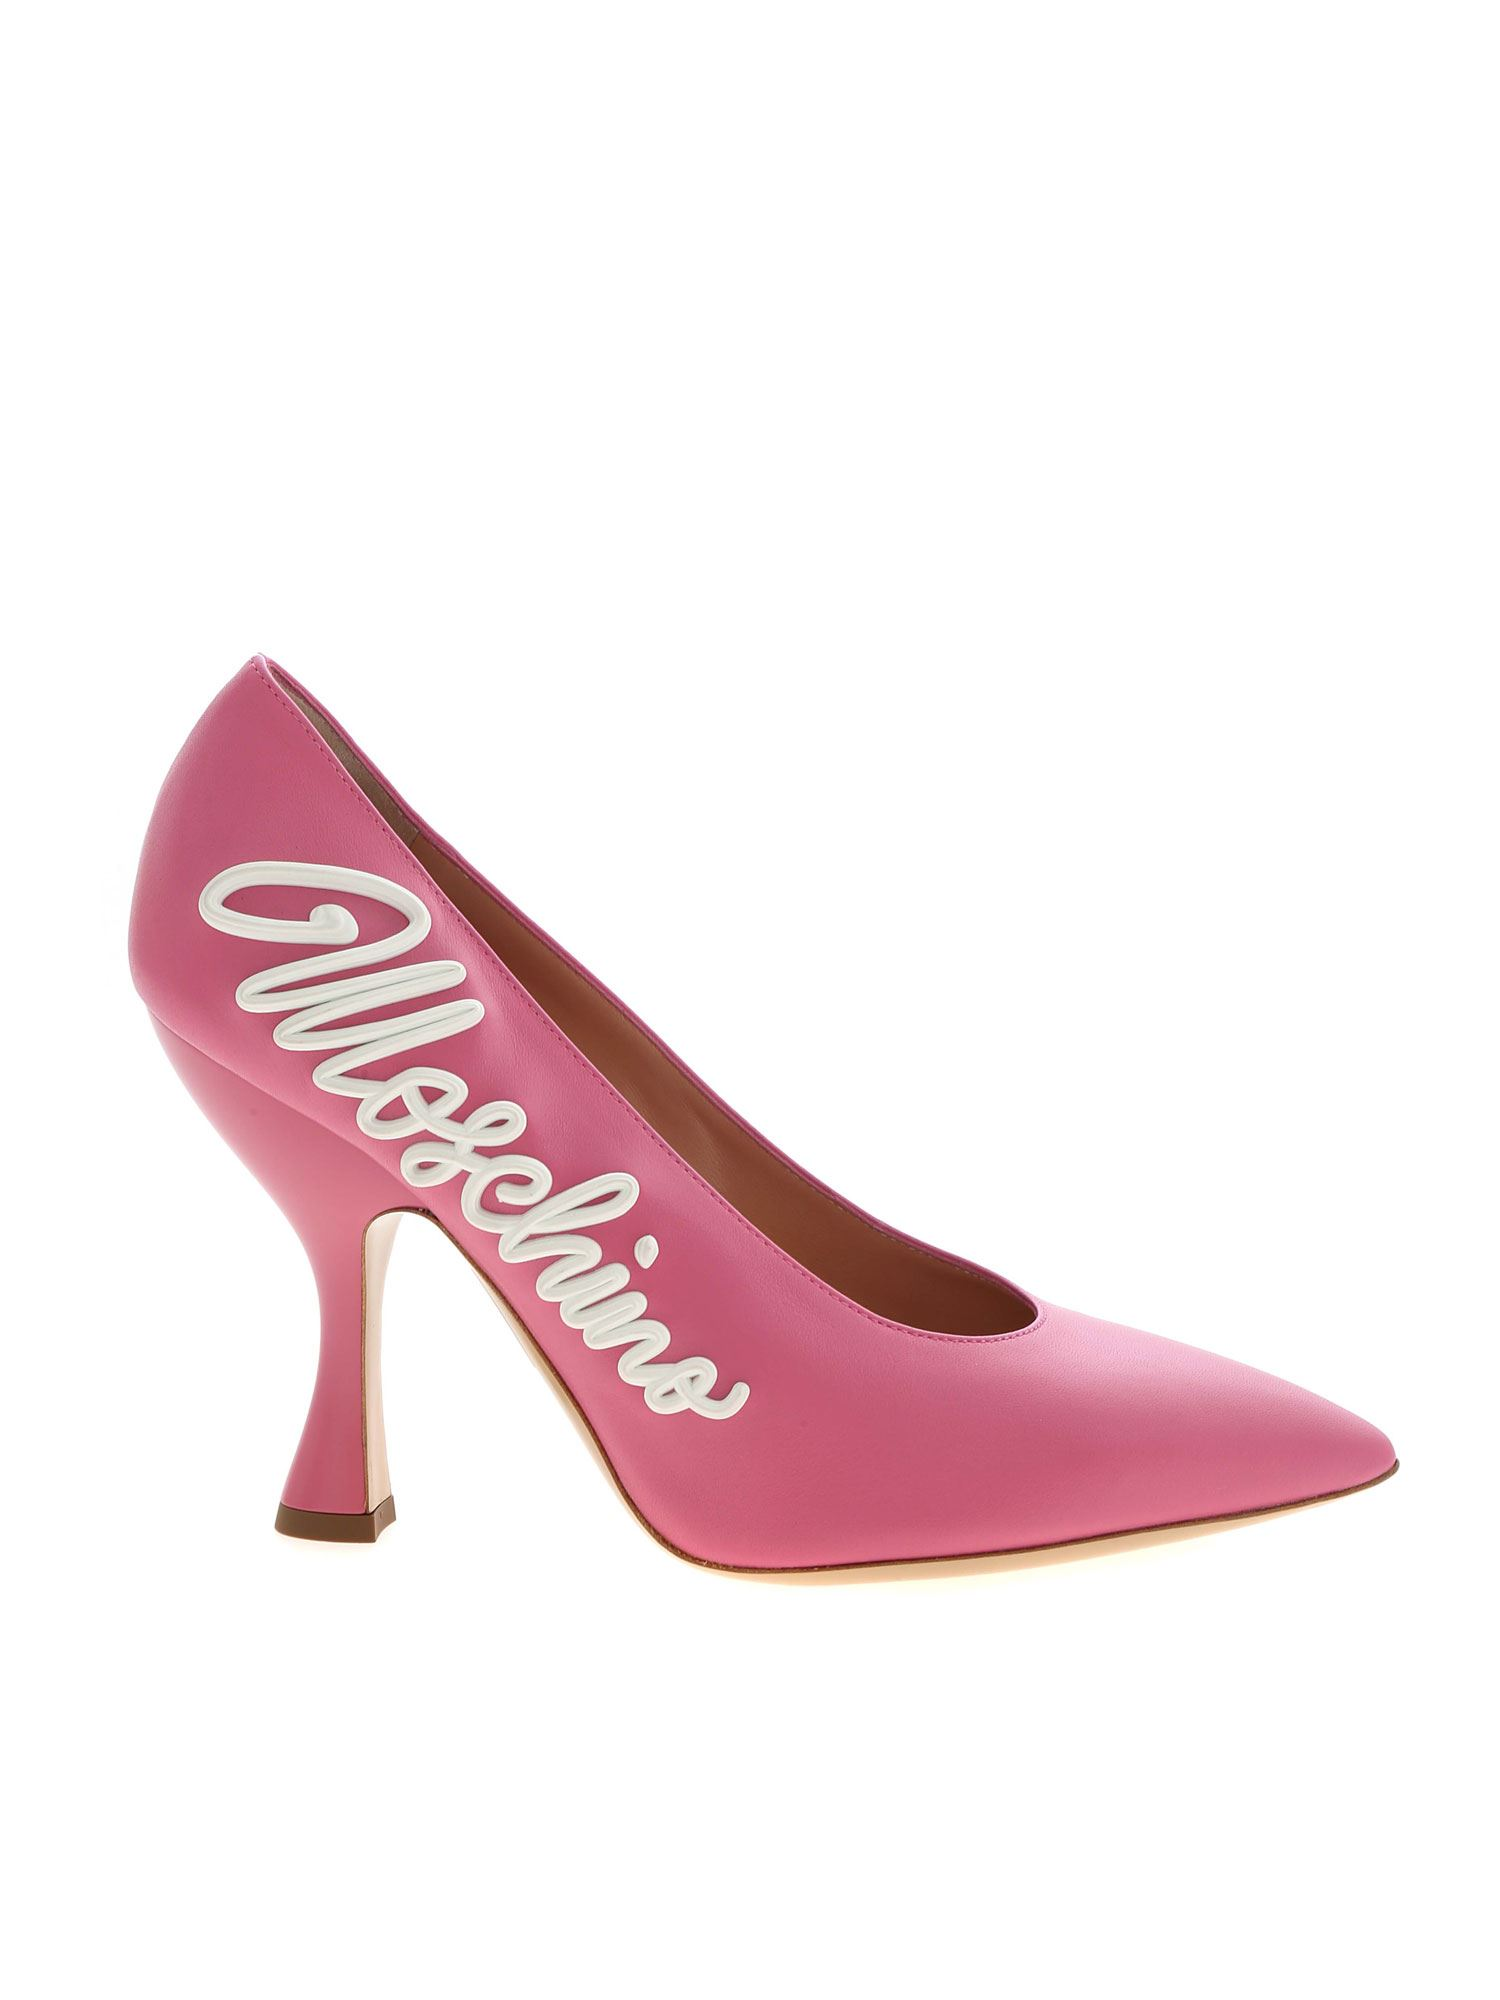 Moschino 3D EFFECT LOGO POINTED PUMPS IN PINK